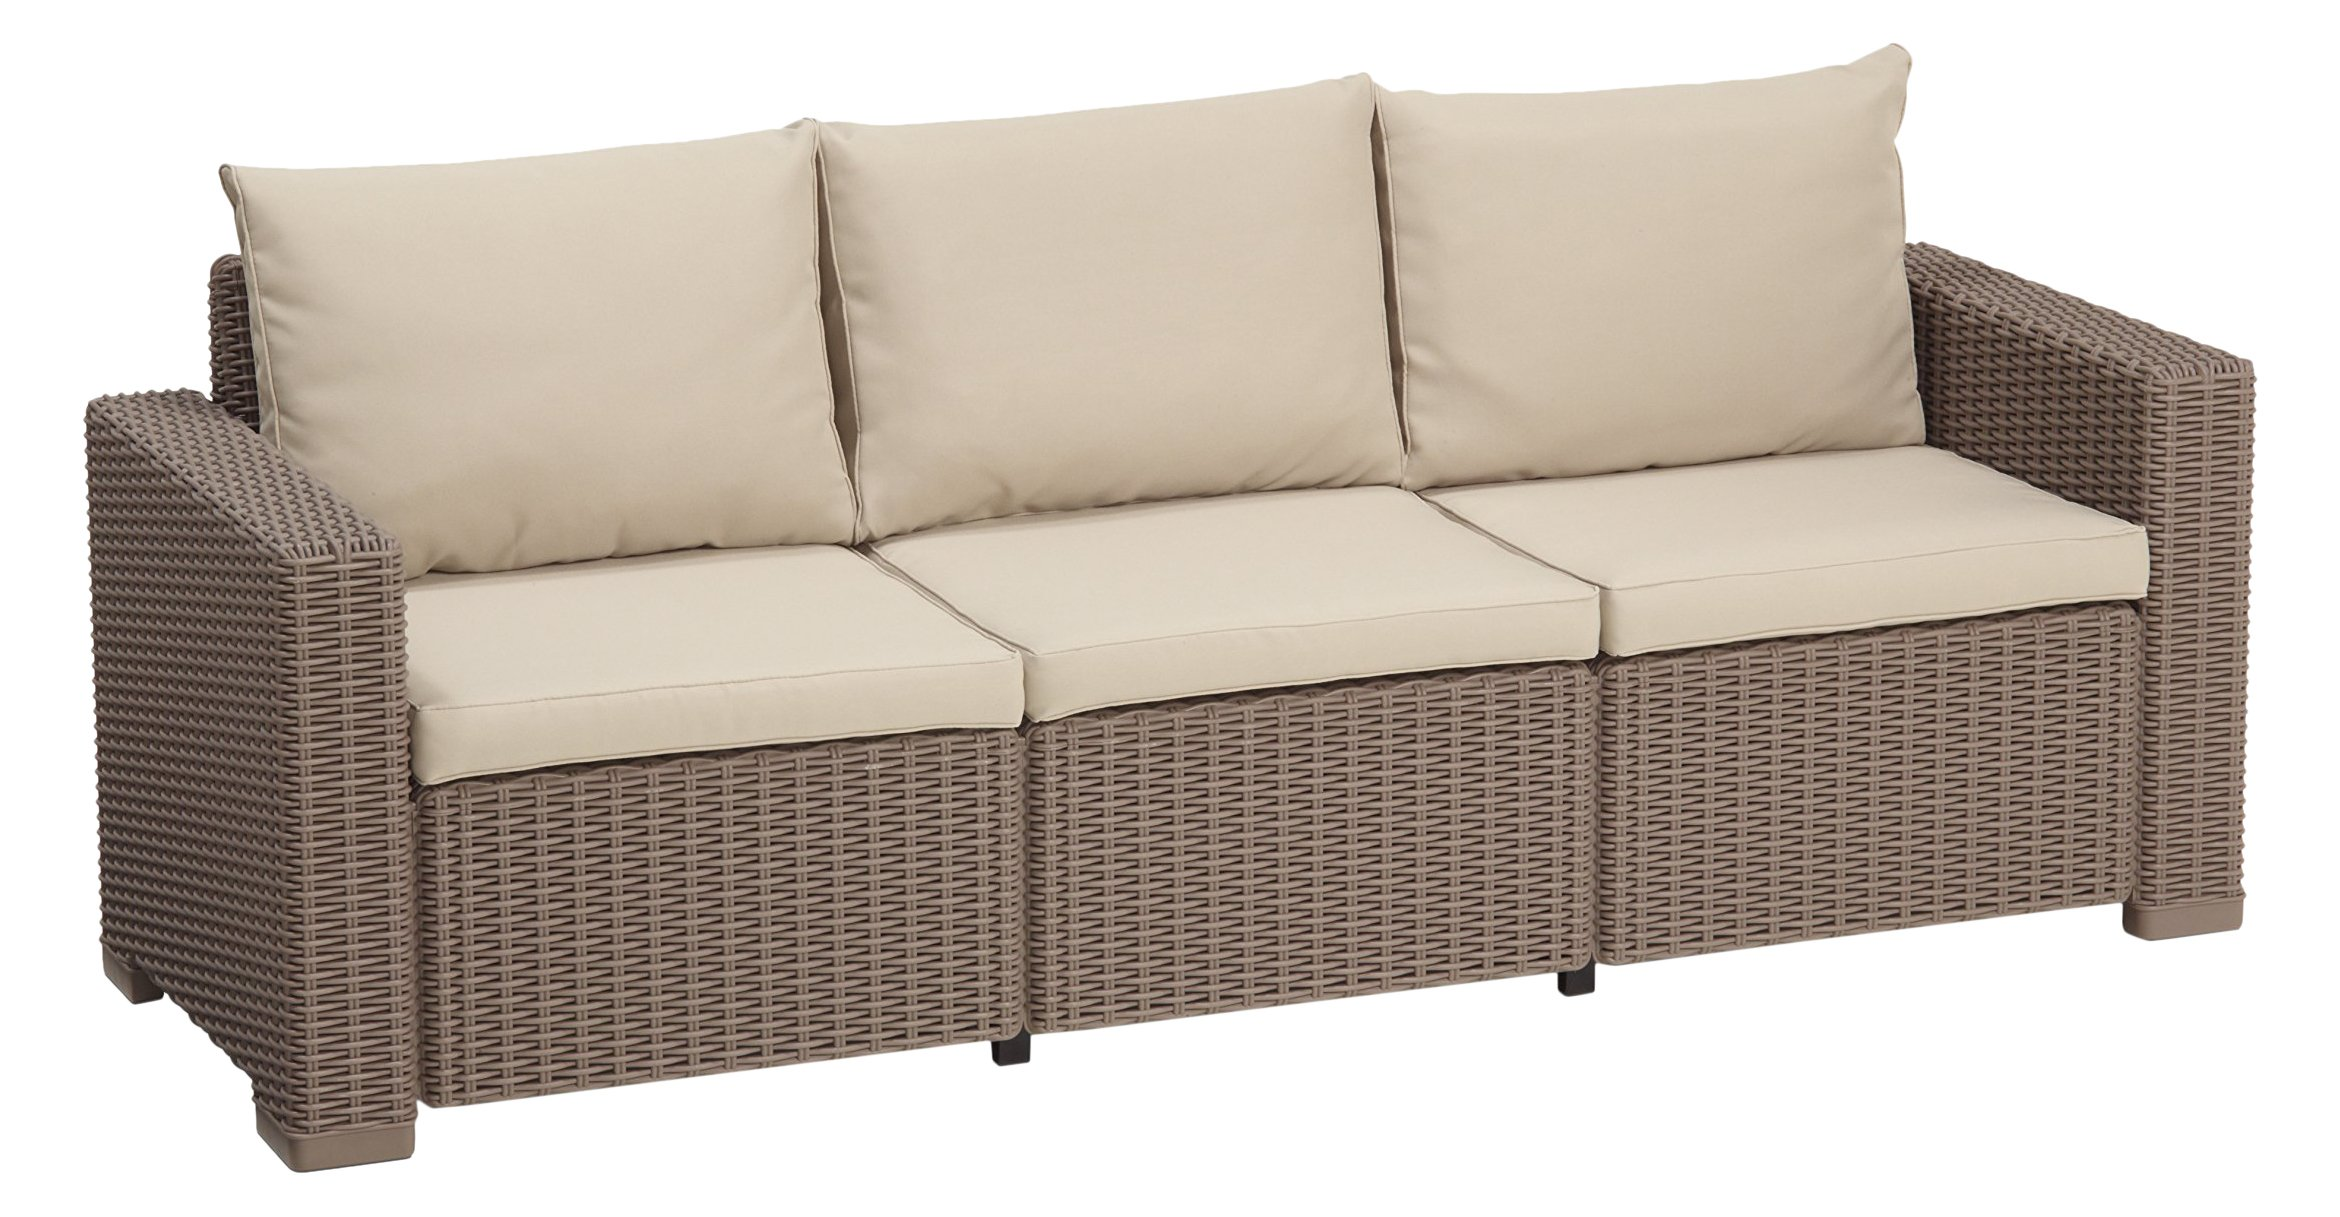 3 Seater Rattan Sofa Bench Chair Cushioned Indoor Outdoor Pool